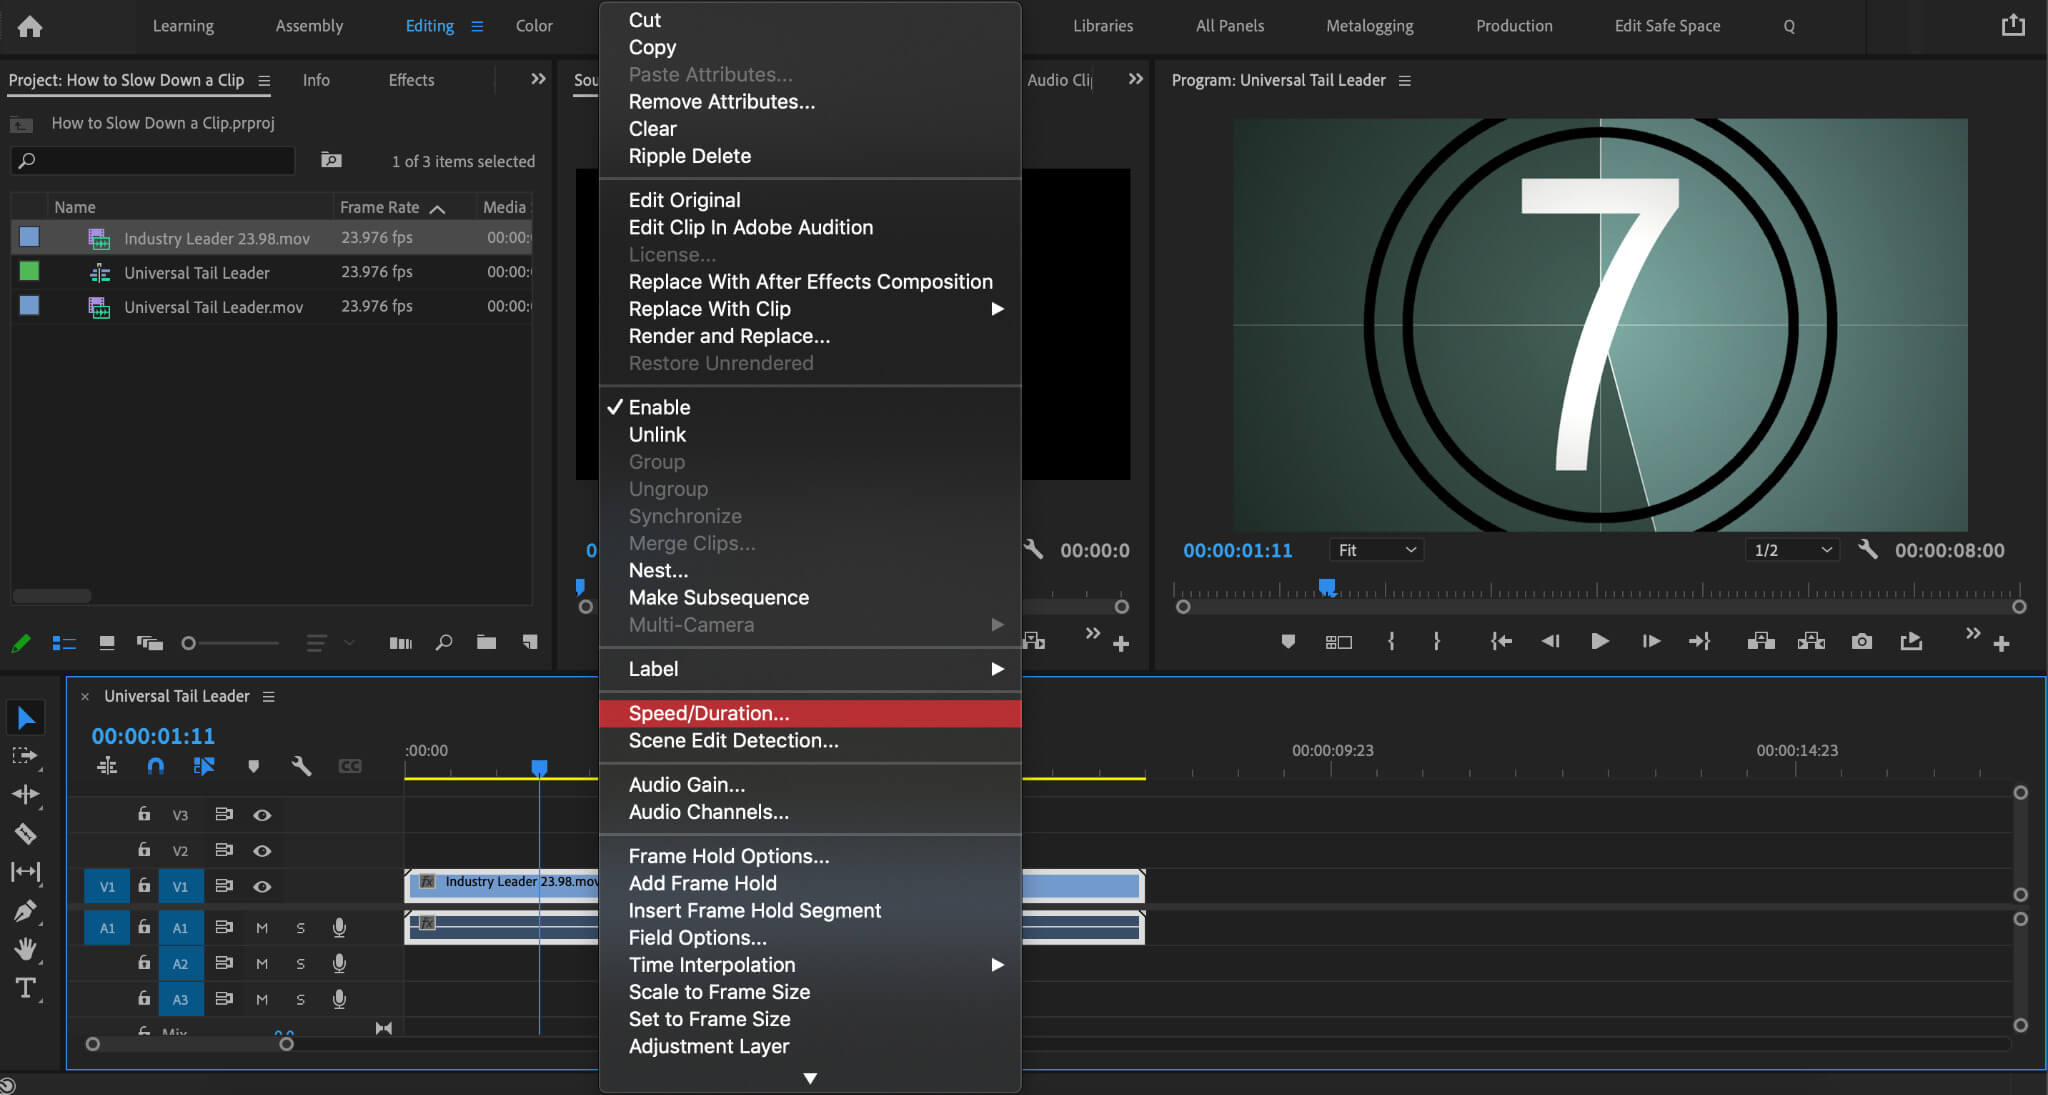 How to speed up a video using SpeedDuration